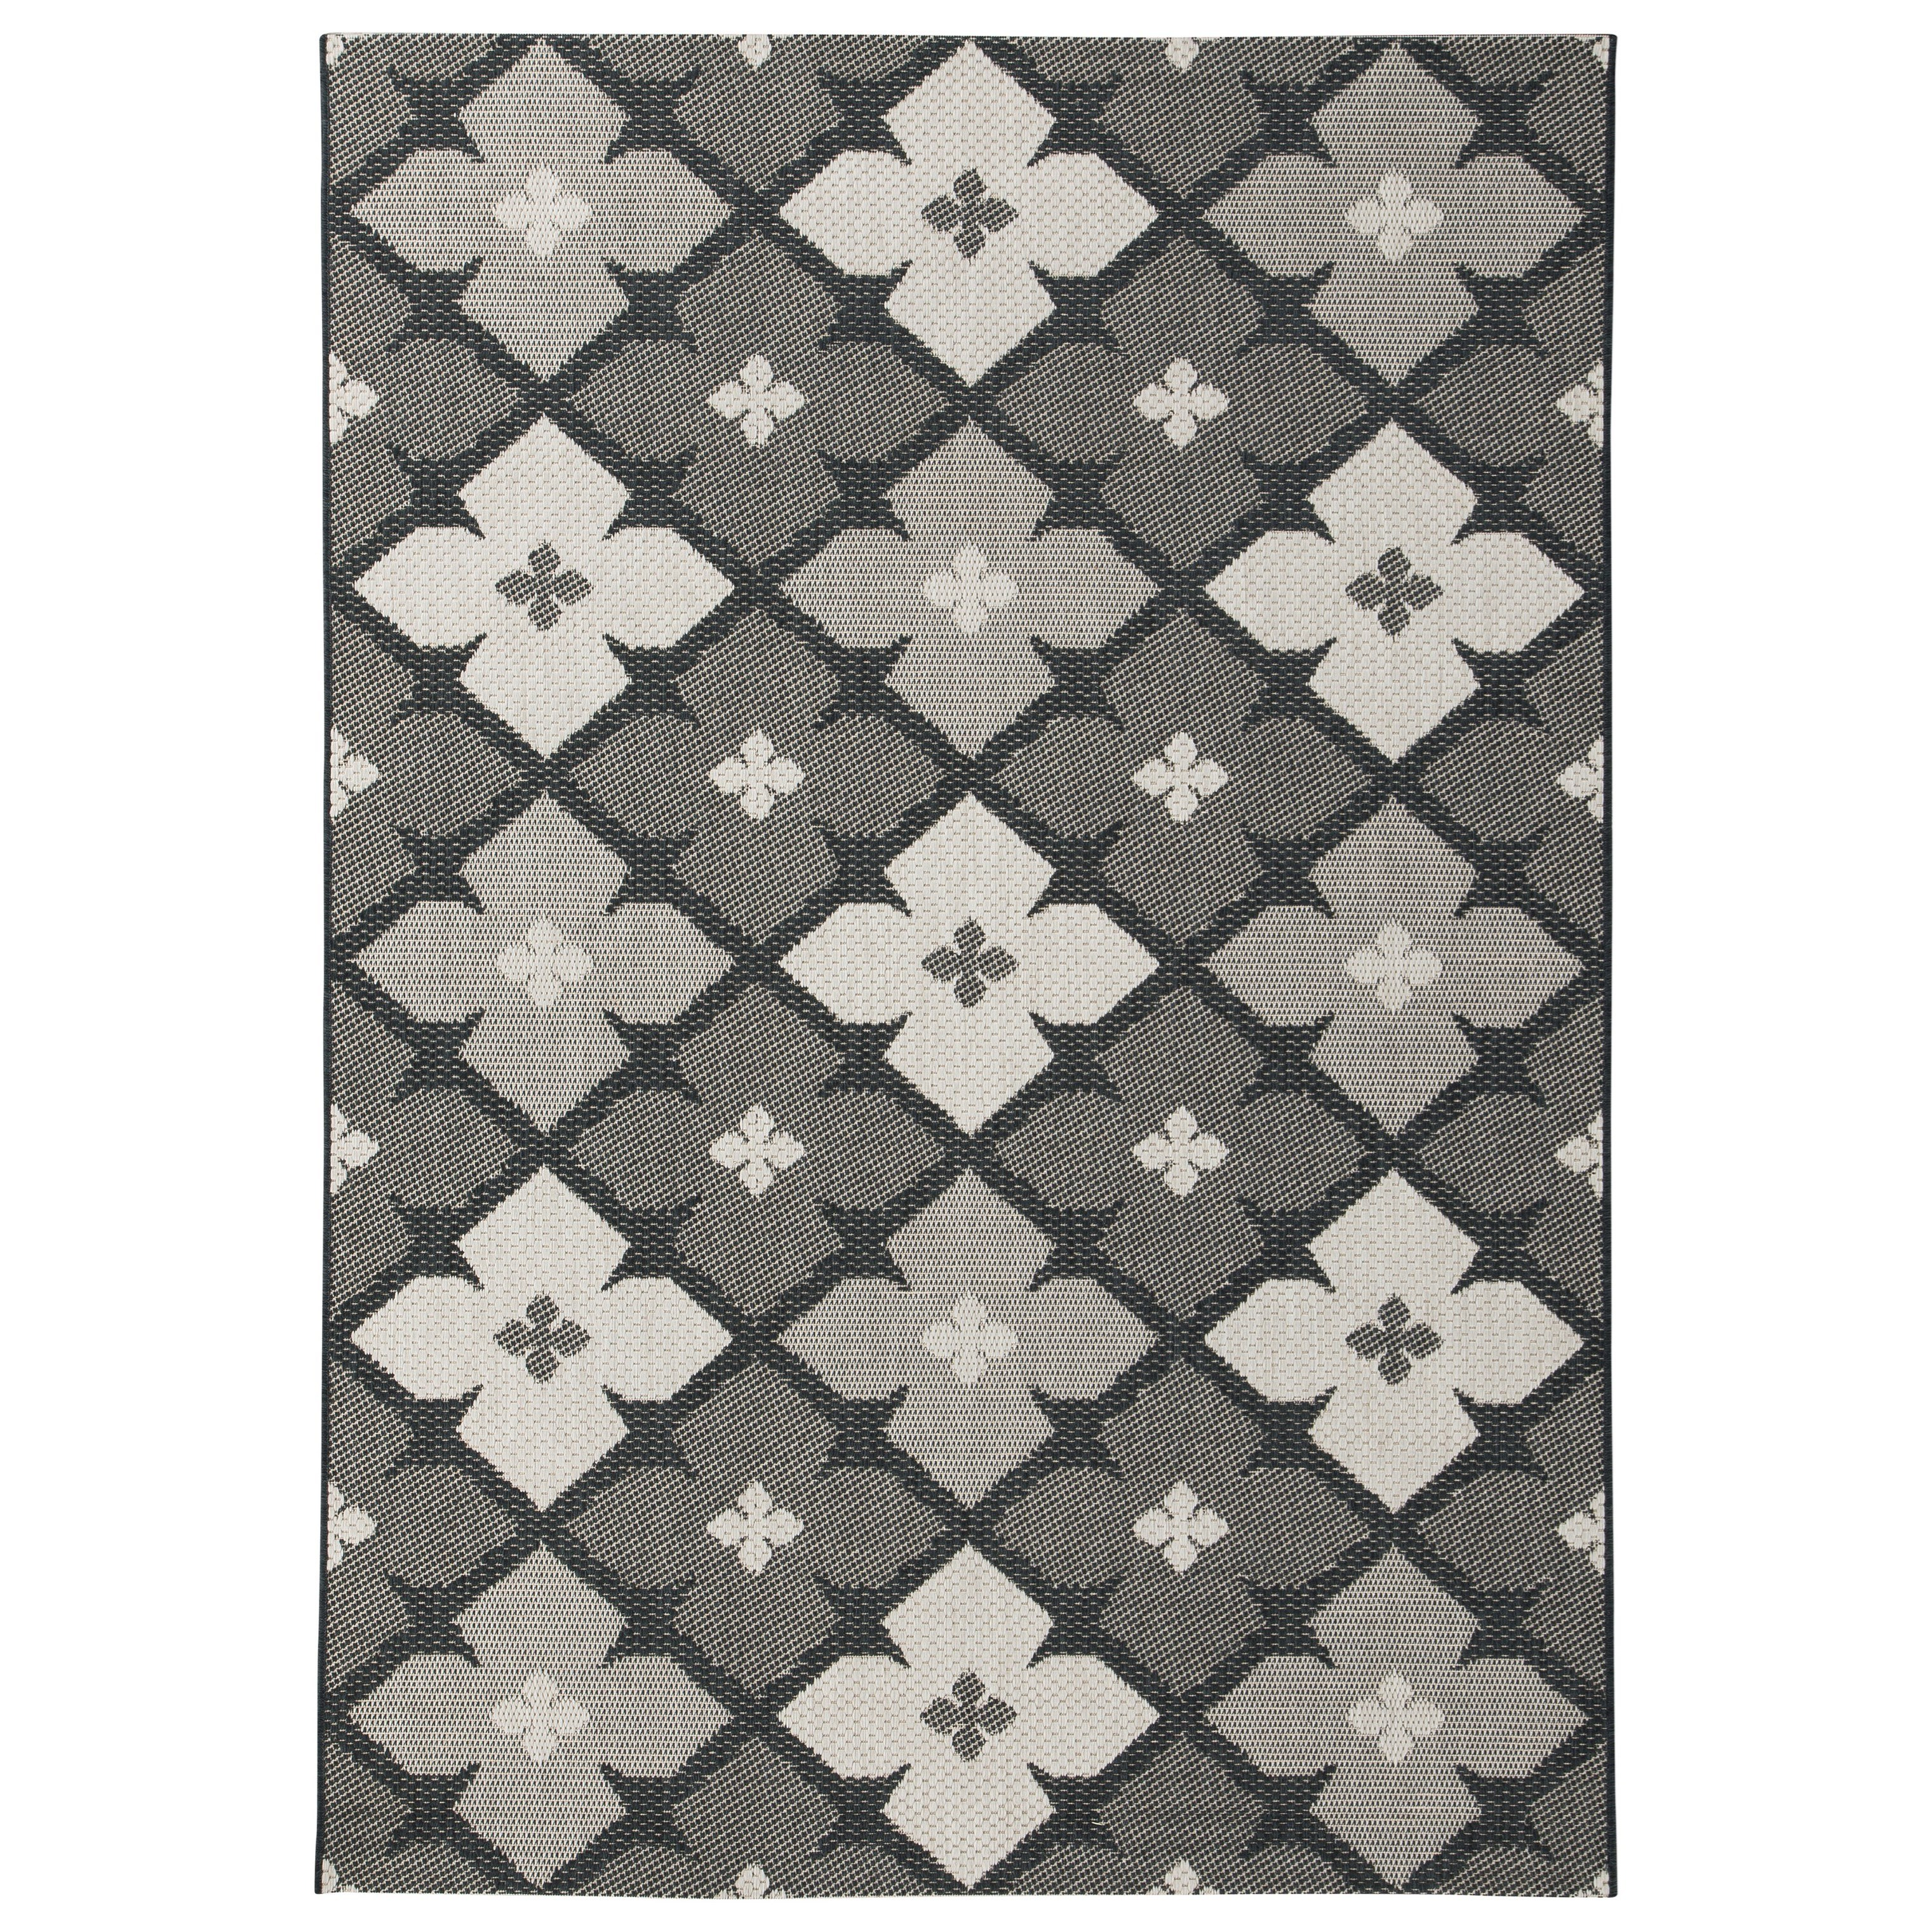 Trendz Contemporary Area Rugs Asho Black/Cream Large Rug - Item Number: R402391